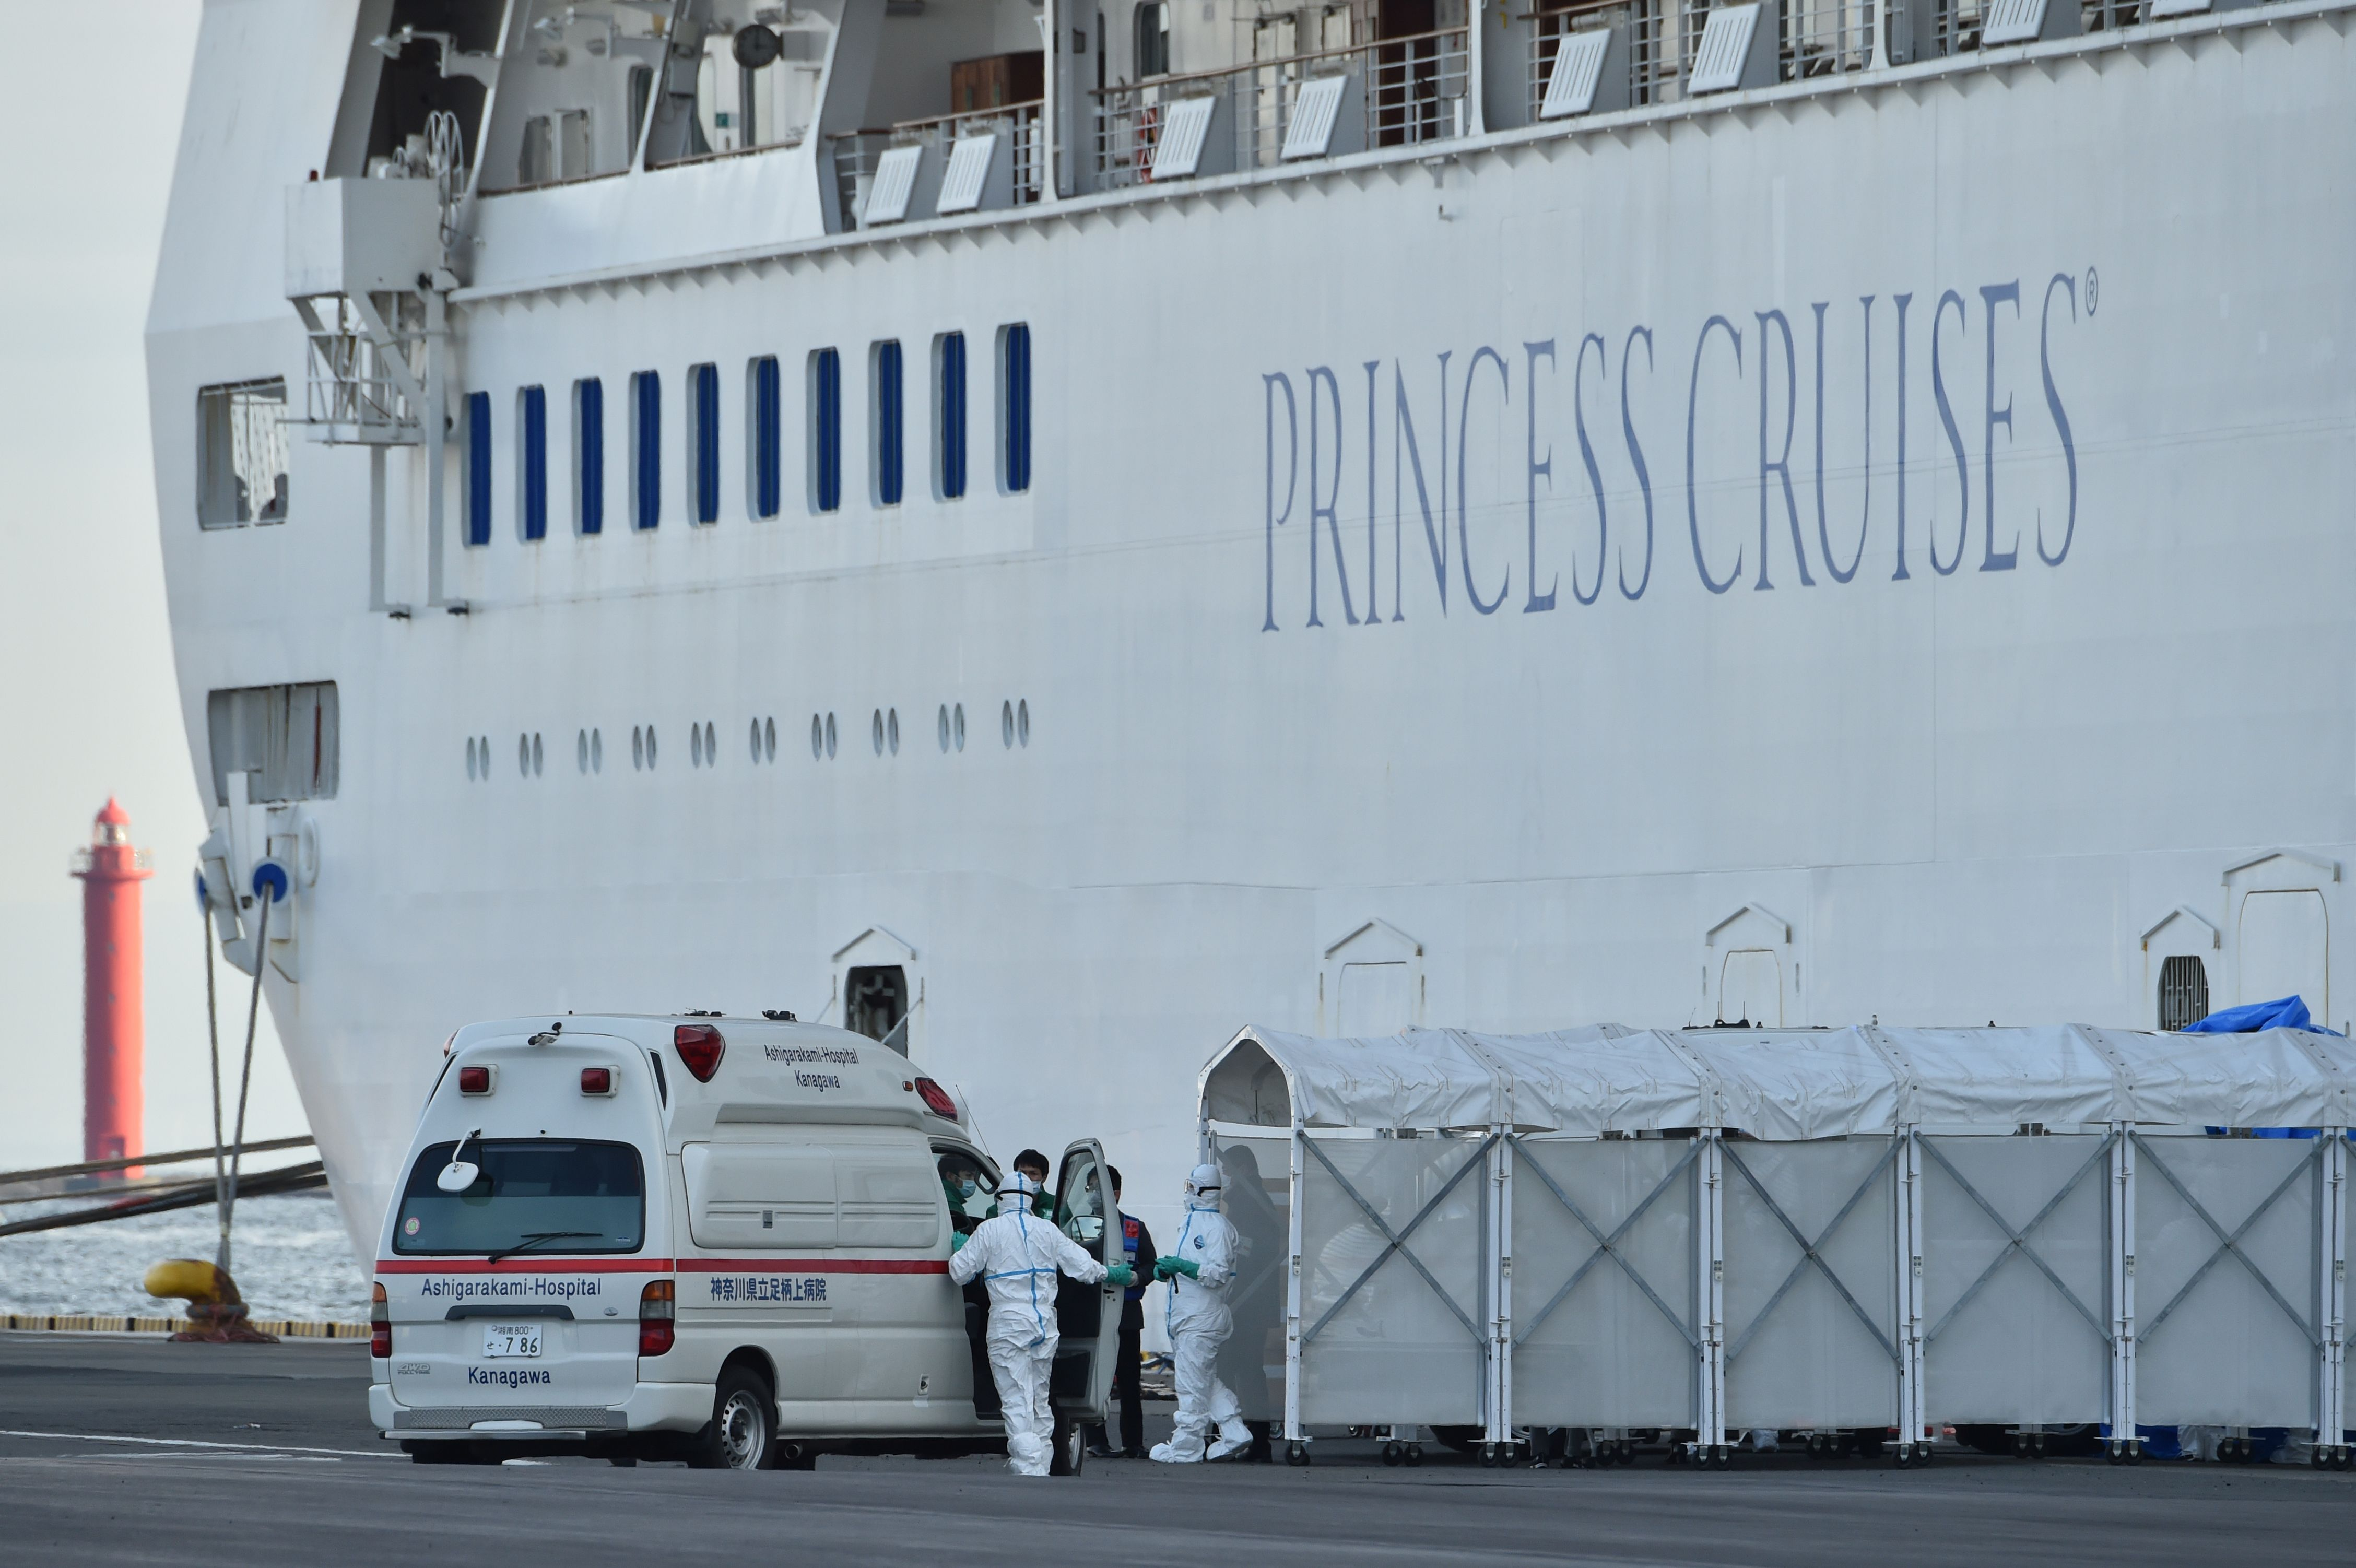 Personnel next to the Diamond Princess cruise ship in Yokohama, Japan, on February 7.